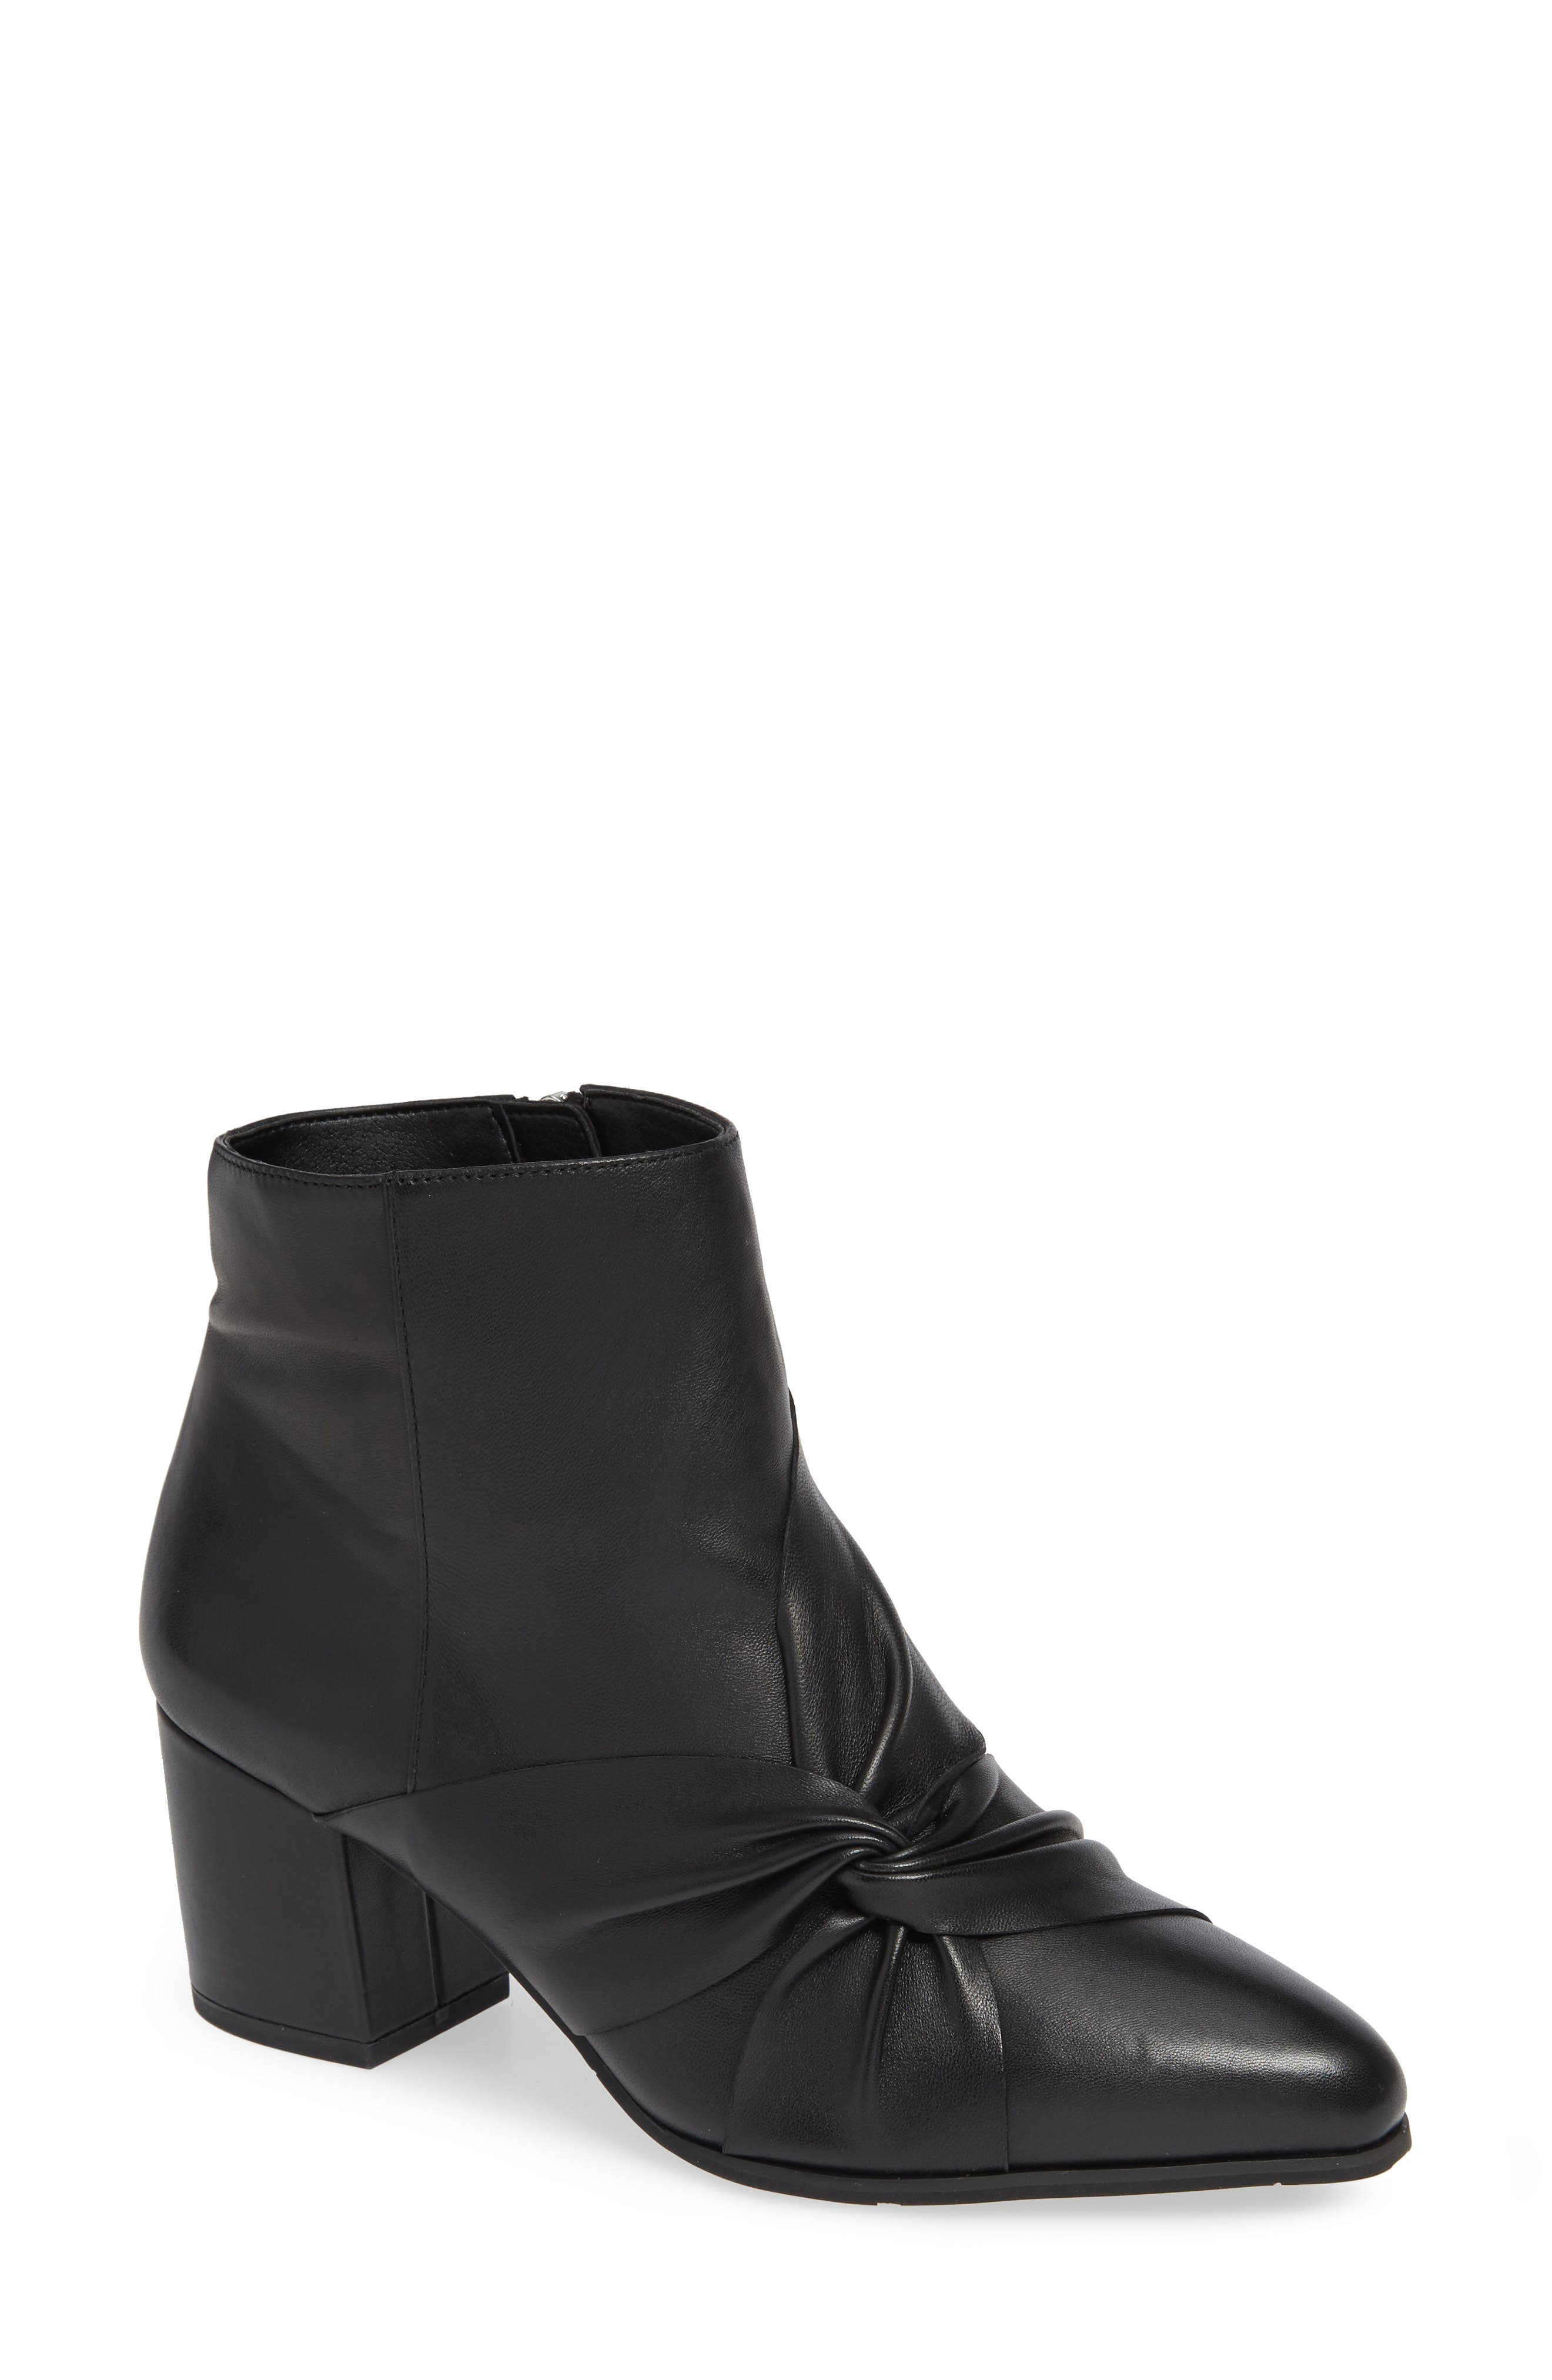 NIC+ZOE, Amorie II Bootie, Main thumbnail 1, color, BLACK LEATHER